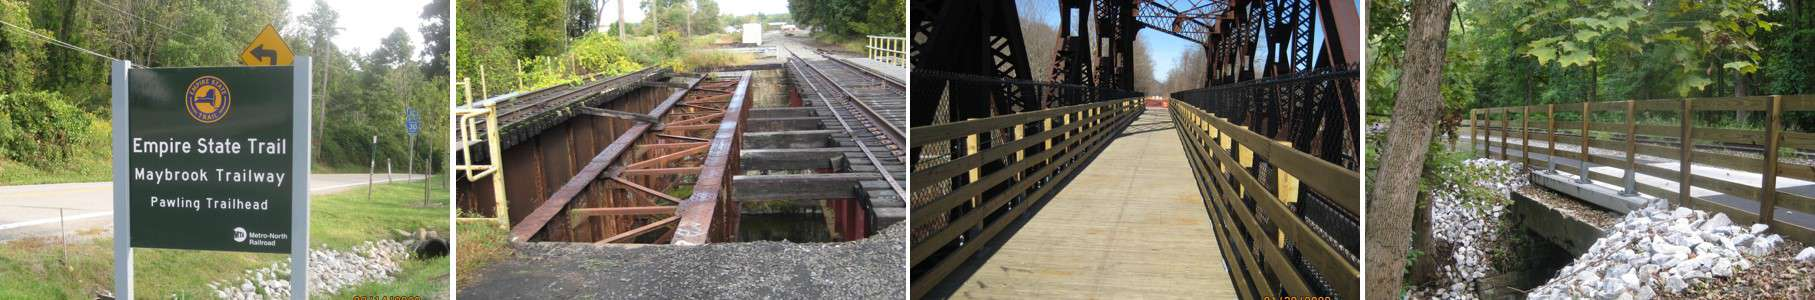 Empire State Trail Now Open Maybrook Trail